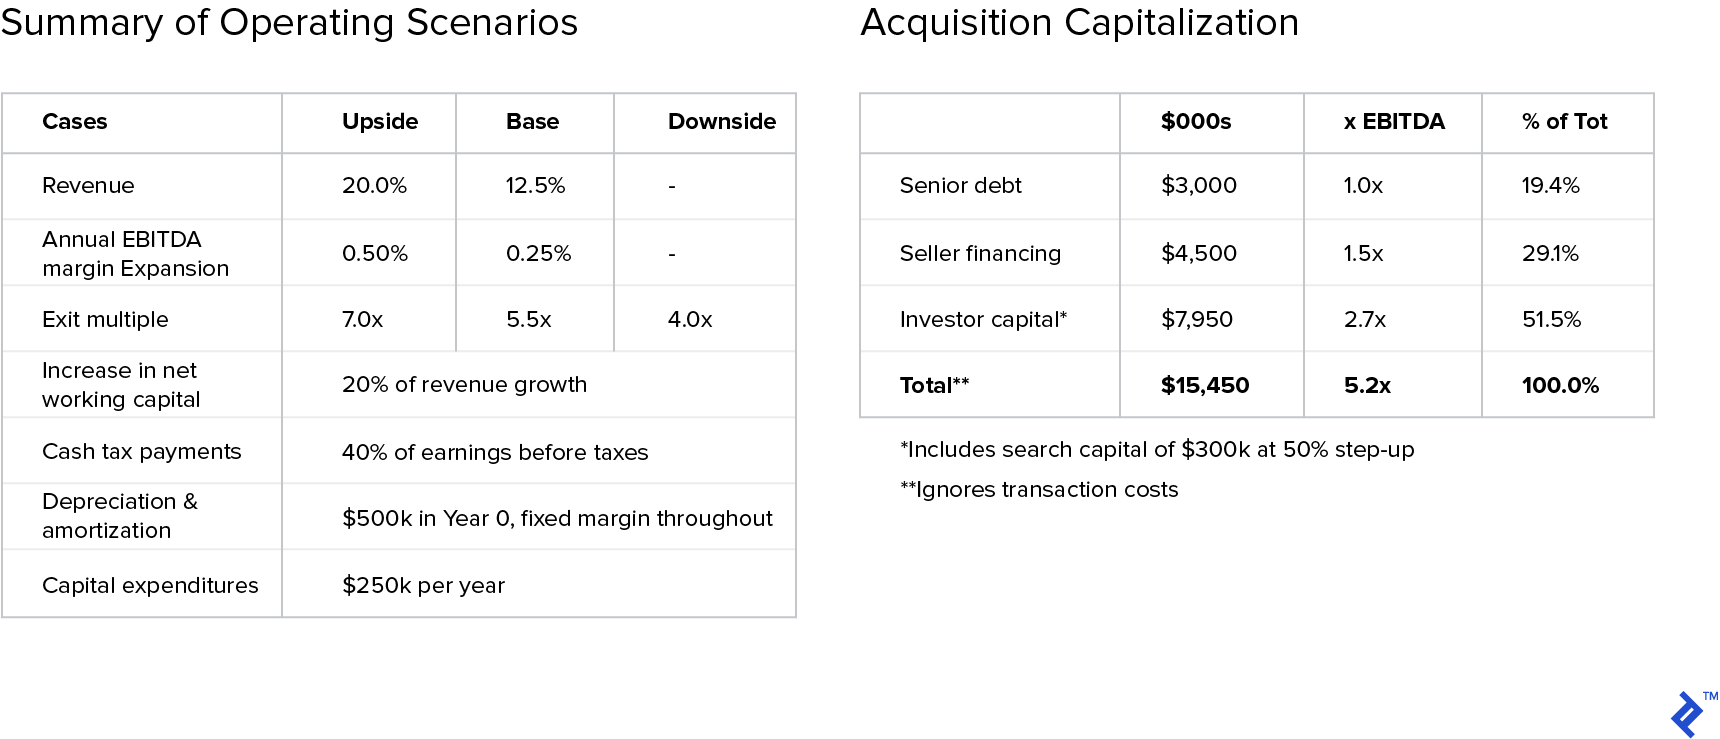 Graphs: Summary of Operating Scenarios and Acquisition Capitalization